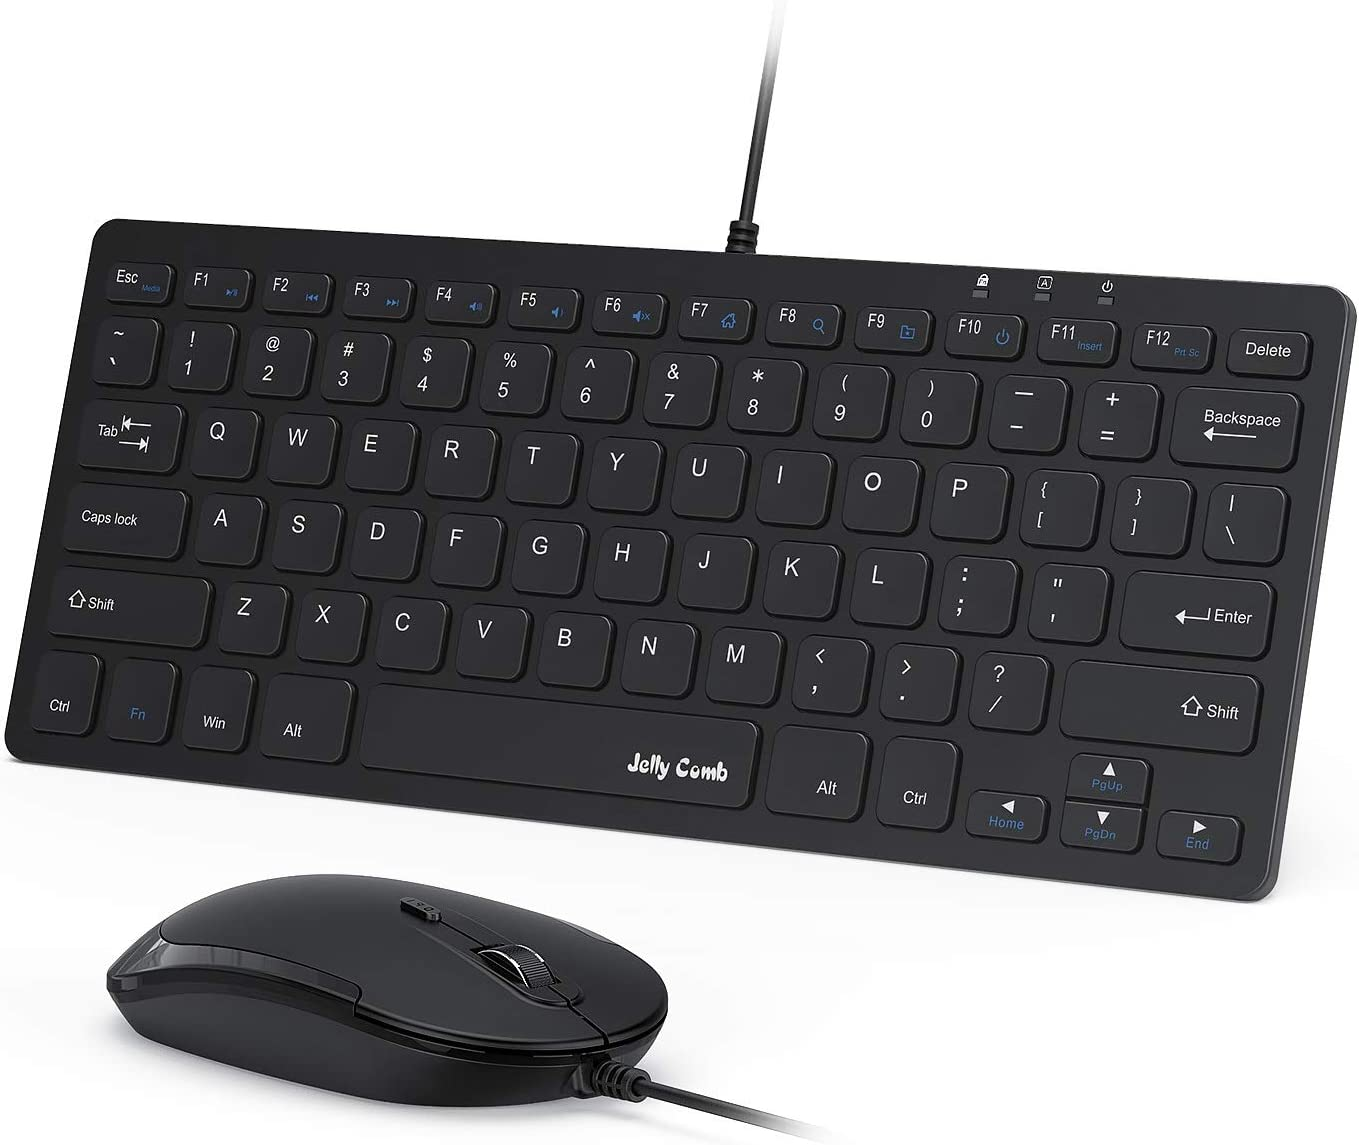 USB Keyboard and Mouse,Jelly Comb Ultra Thin Small Compact Wired Keyboard and Mouse High Definition Optical for Computers, Laptop, PC, Desktop, Laptop,Windows(Black)